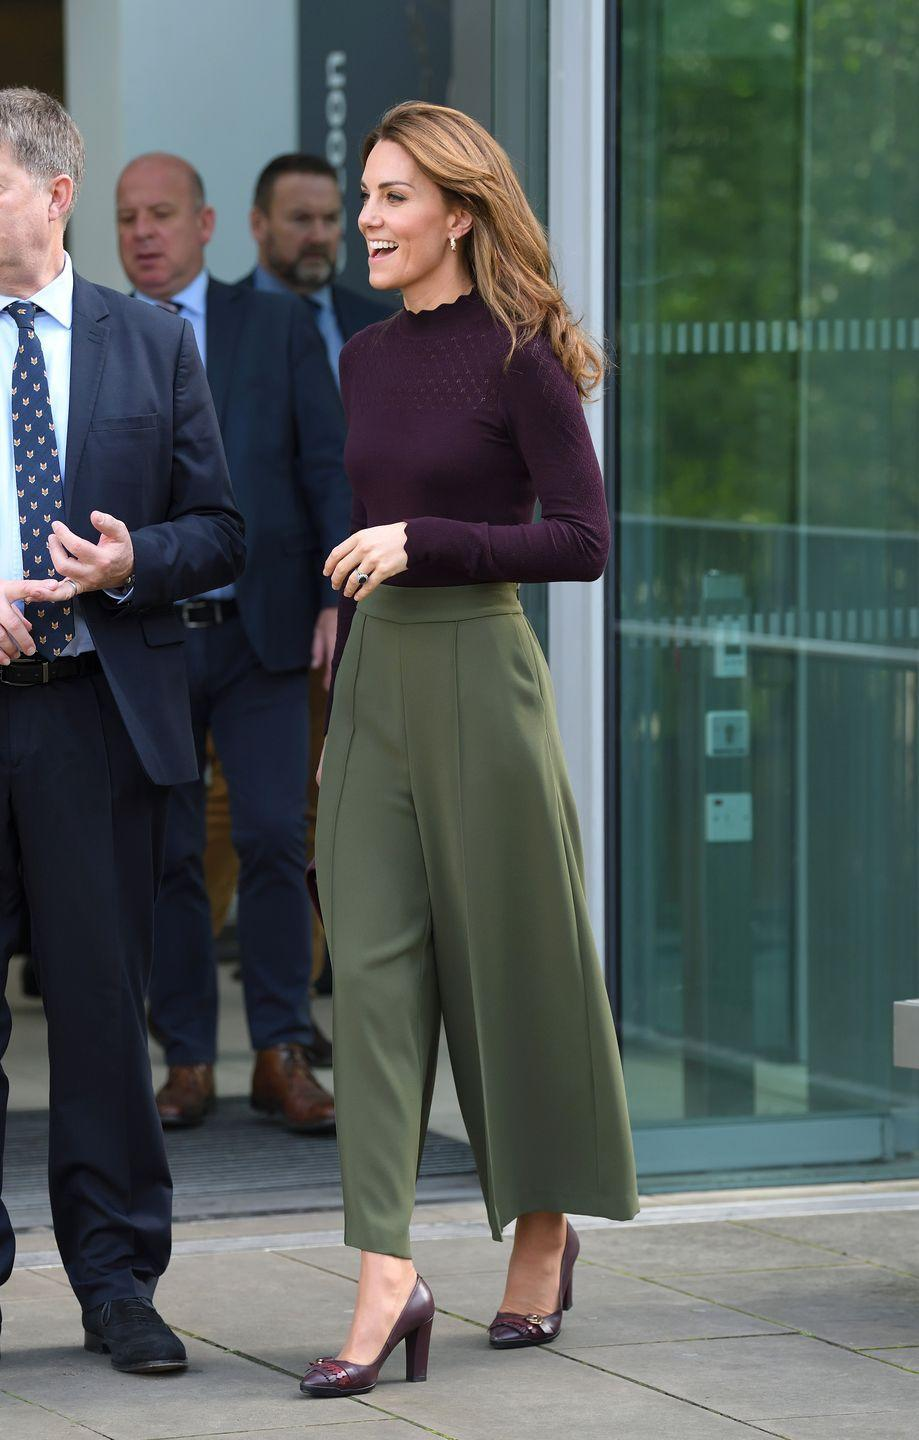 "<p>For a <a href=""https://www.townandcountrymag.com/style/fashion-trends/a29399497/kate-middleton-chanel-bag-jigsaw-trousers-natural-history-museum-photos/"" rel=""nofollow noopener"" target=""_blank"" data-ylk=""slk:surprise visit to the National History Museum"" class=""link rapid-noclick-resp"">surprise visit to the National History Museum</a>, Middleton wore a burgundy sweater with a scalloped neckline and sleeves, and paired it with olive wide-leg trousers. She added burgundy pumps, gold Asprey hoops, and a Chanel handbag for the quintessential early fall outfit.</p>"